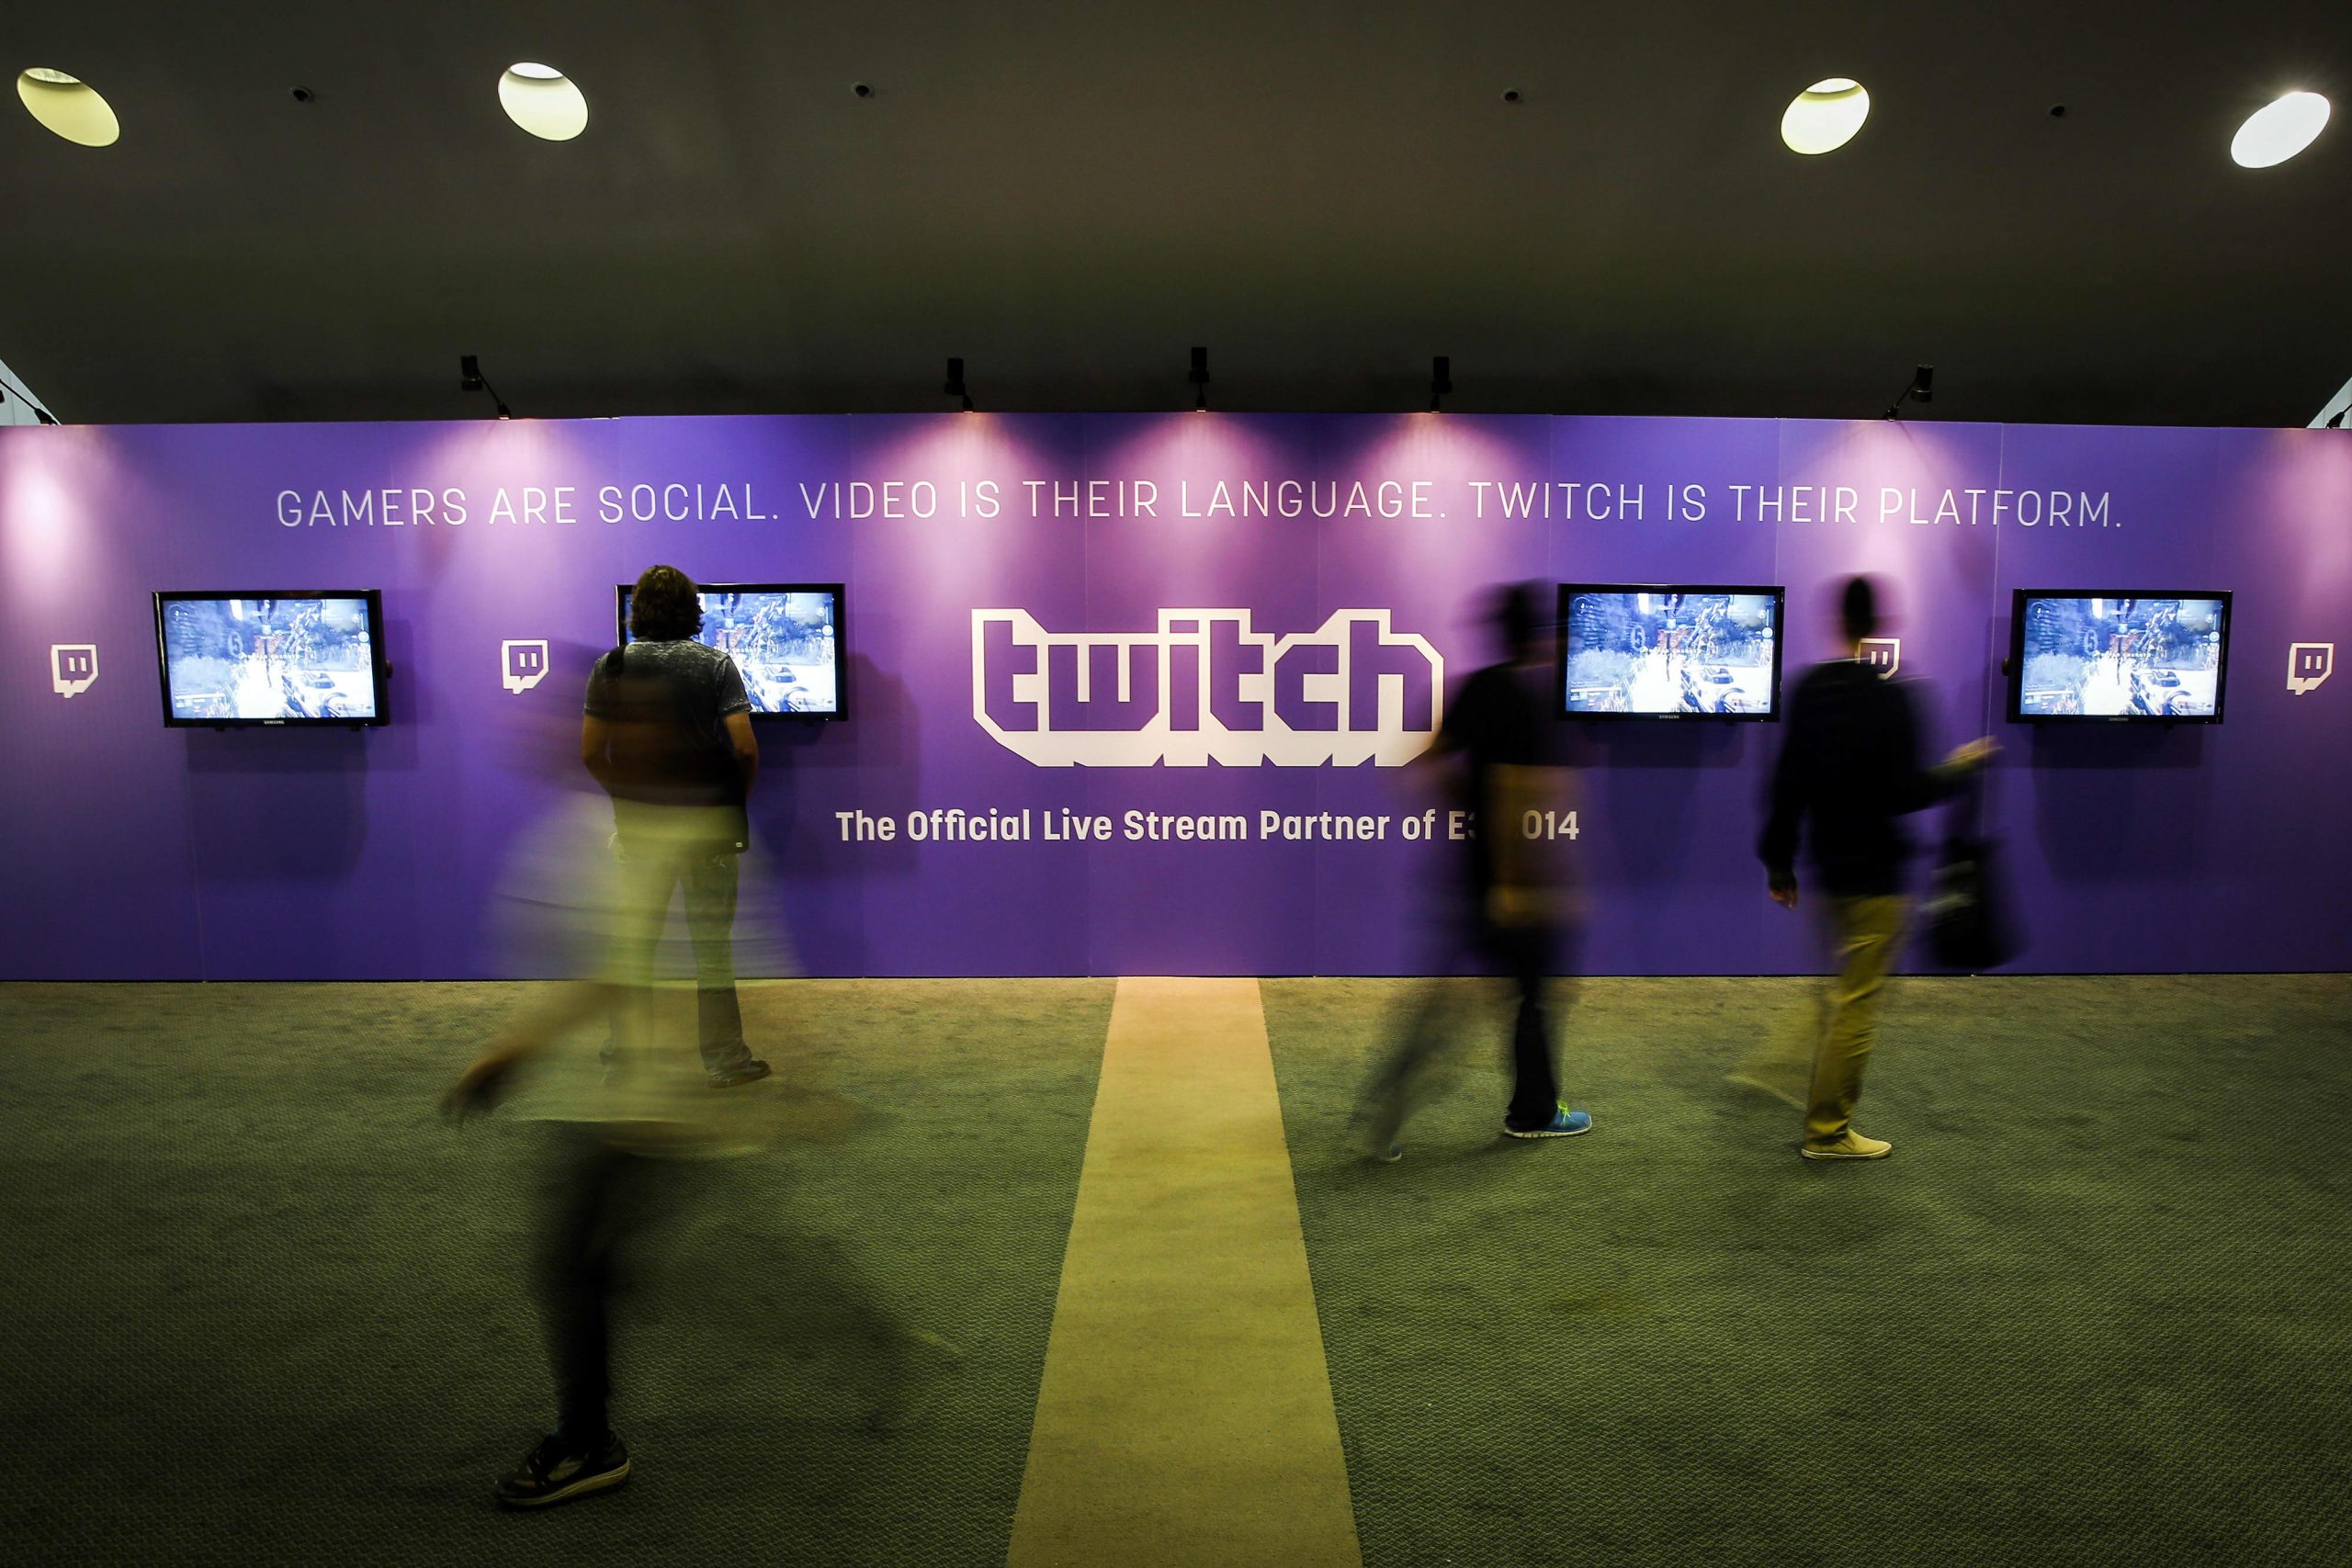 Twitch says it will punish users for harmful offline behavior